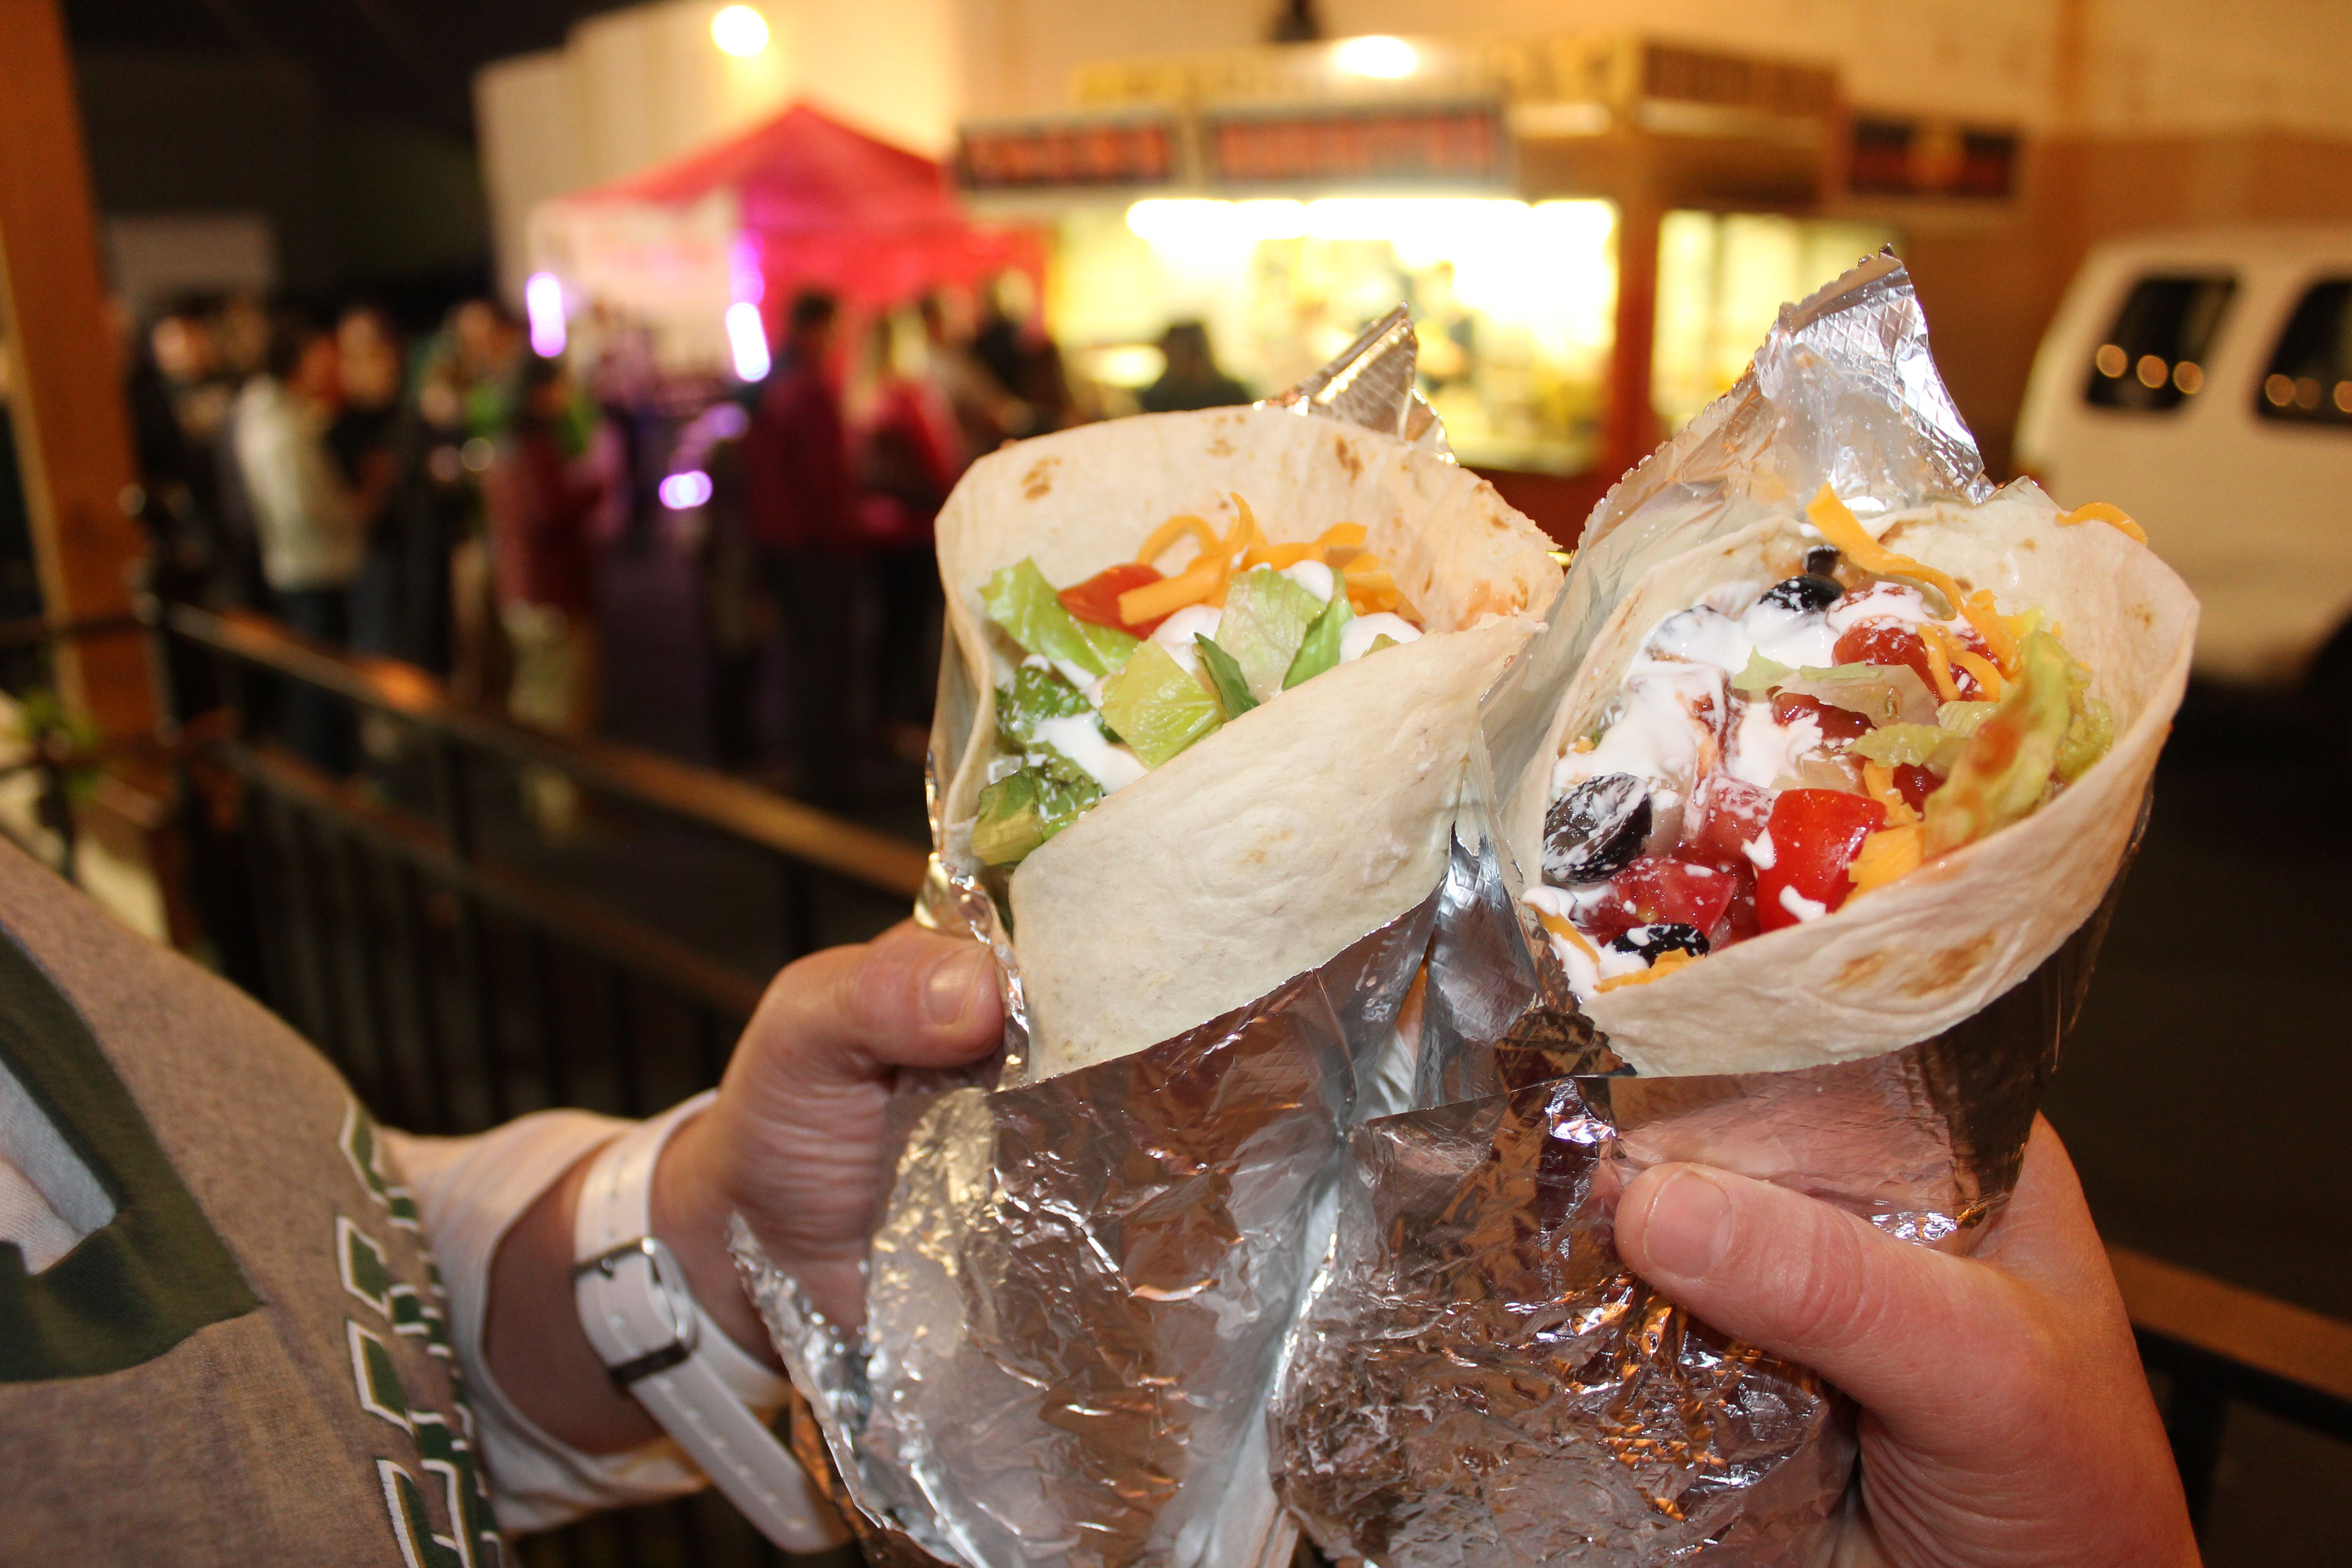 Is The Burrito Buggy Coming Back Ou Ohio University Athens Ohio Check out /r/ohiobobcats for a university specific subreddit. is the burrito buggy coming back ou ohio university athens ohio